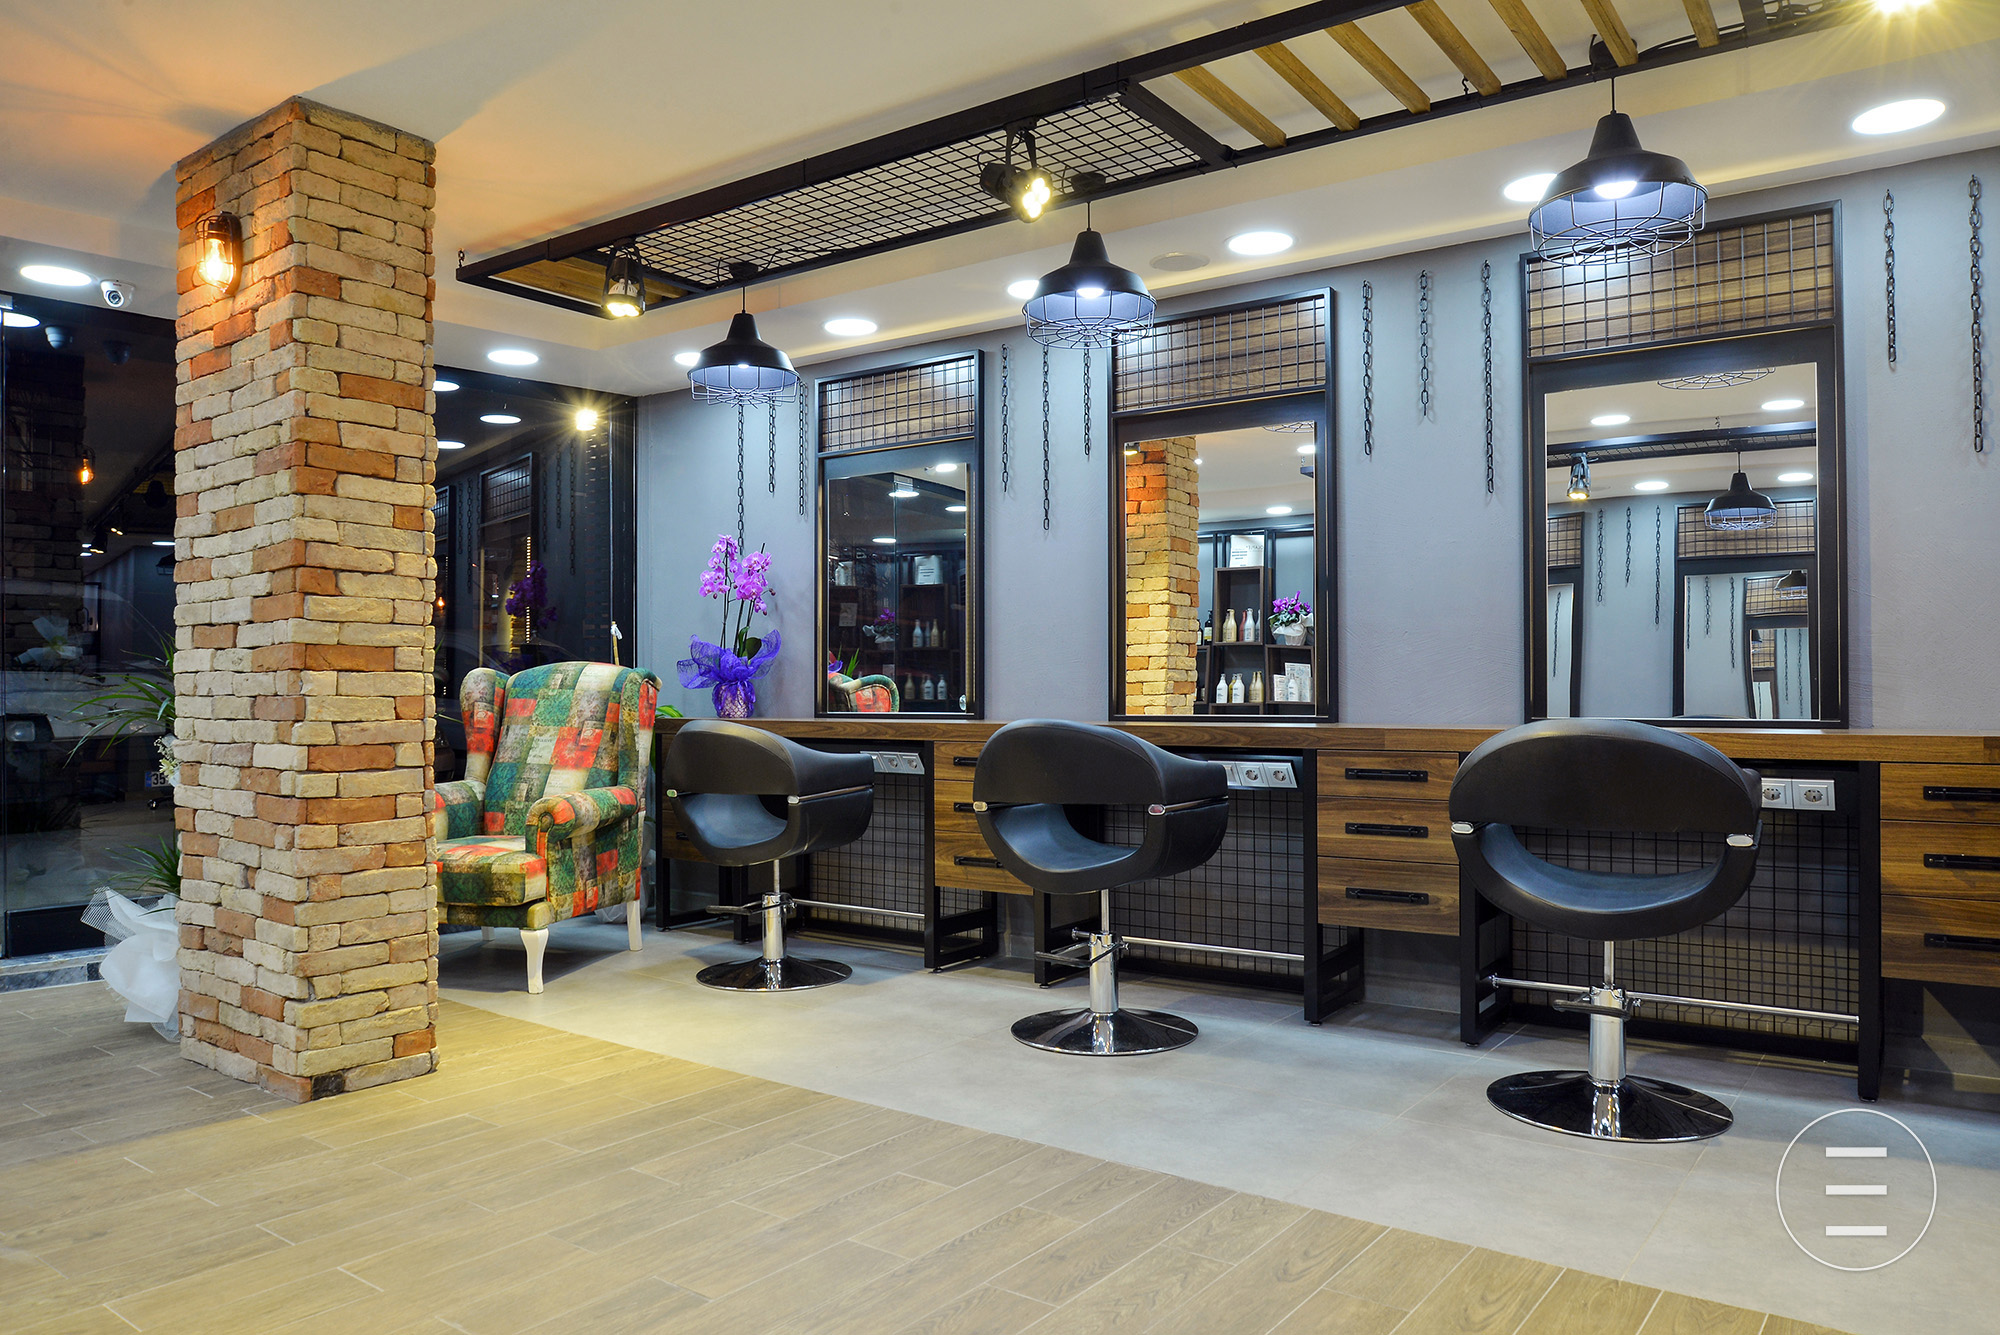 İzmir - Eva Hair Makeup Saloon